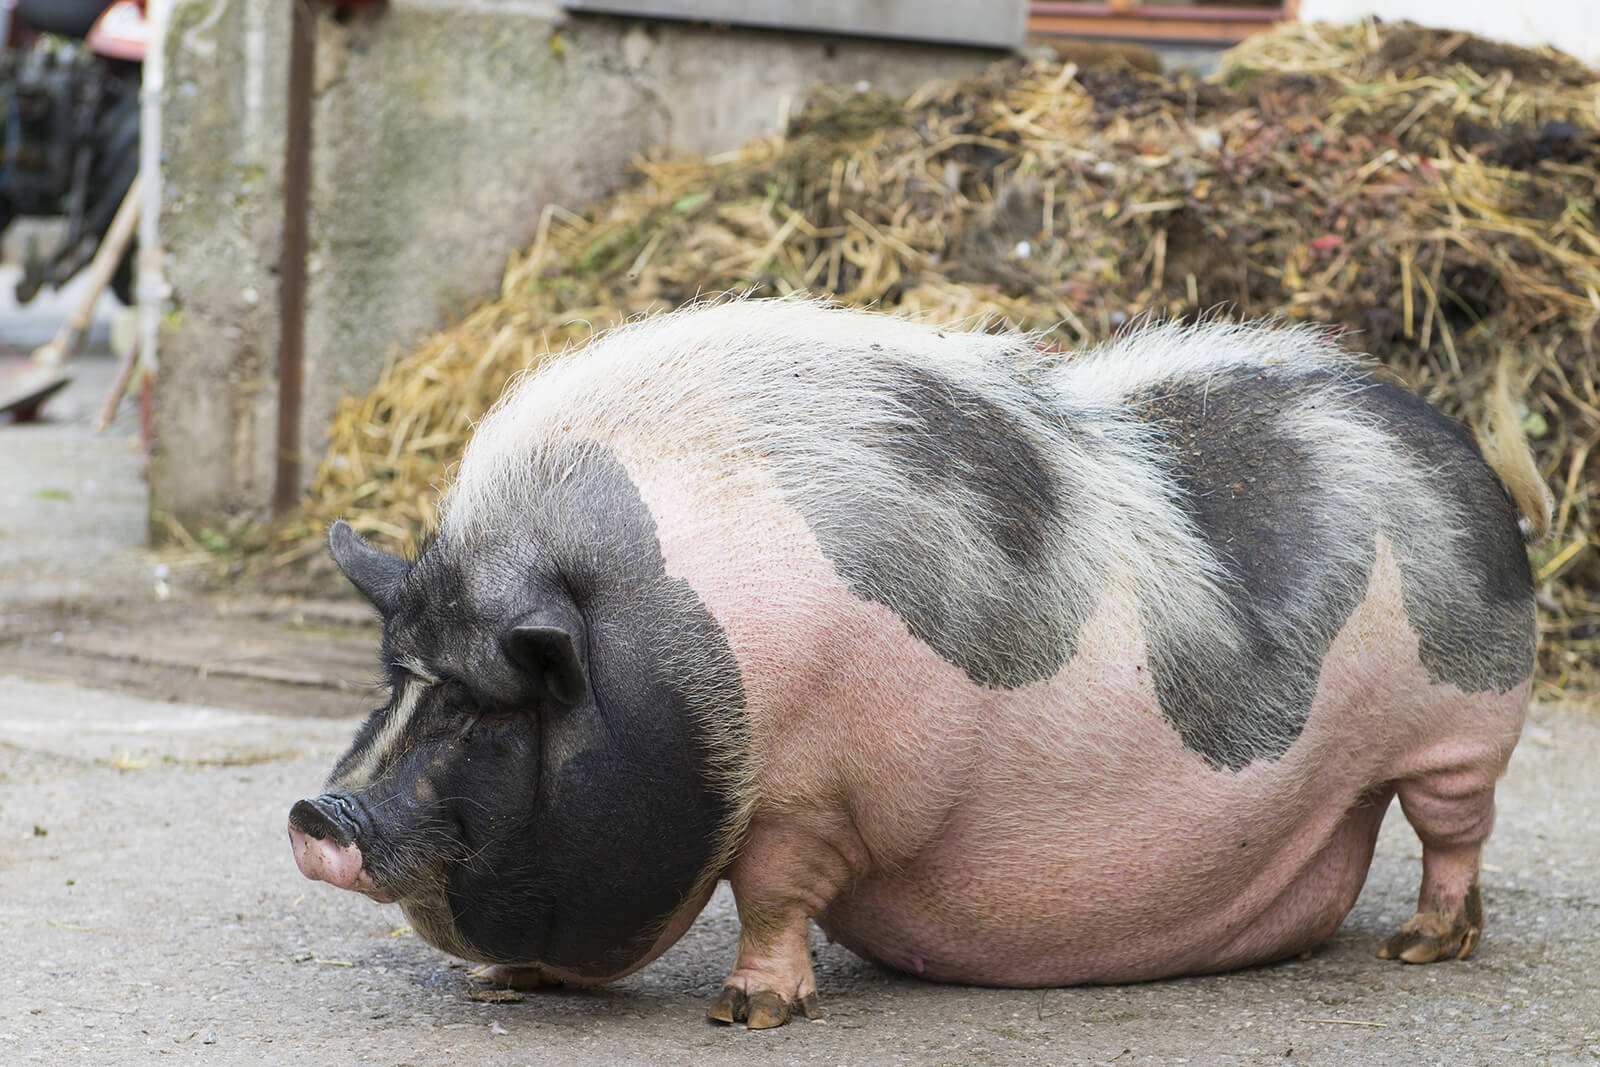 Discussion on this topic: How to Breed Pot Bellied Pigs, how-to-breed-pot-bellied-pigs/